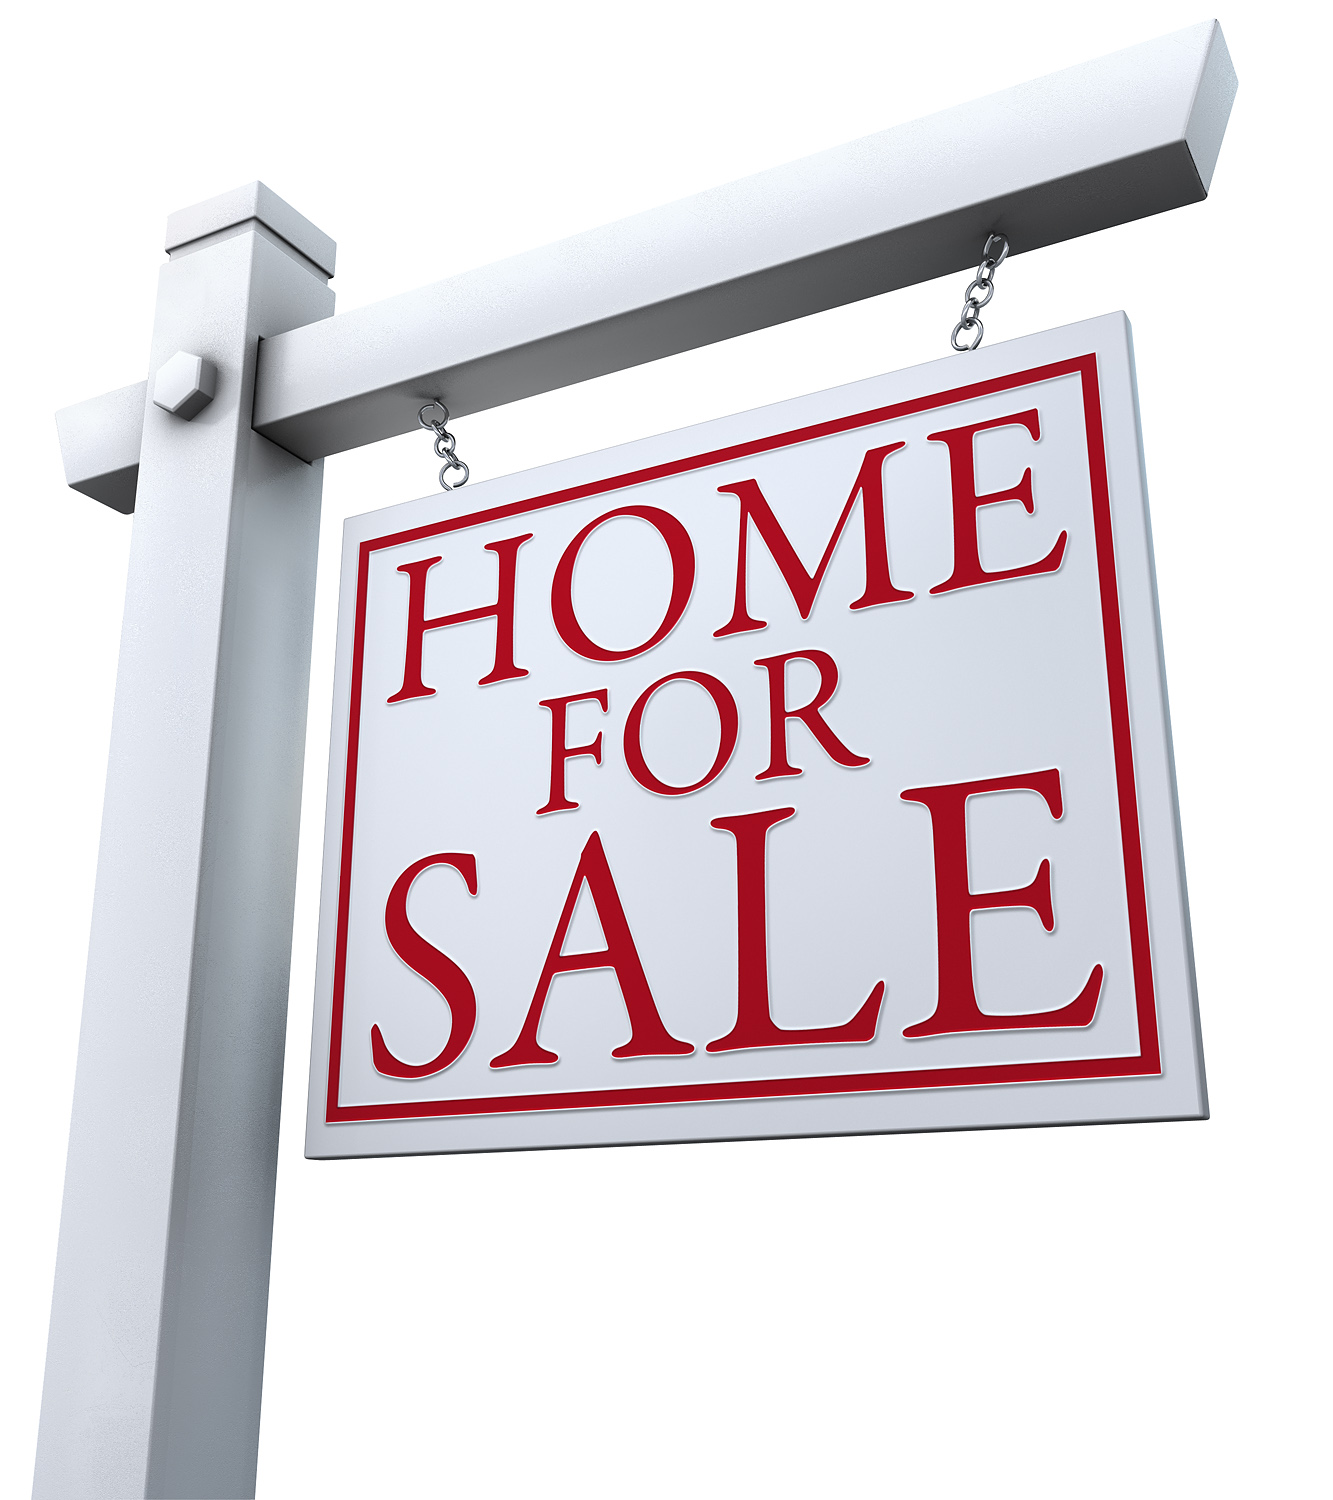 House for sale sign clipart panda free clipart images for Art photos for sale